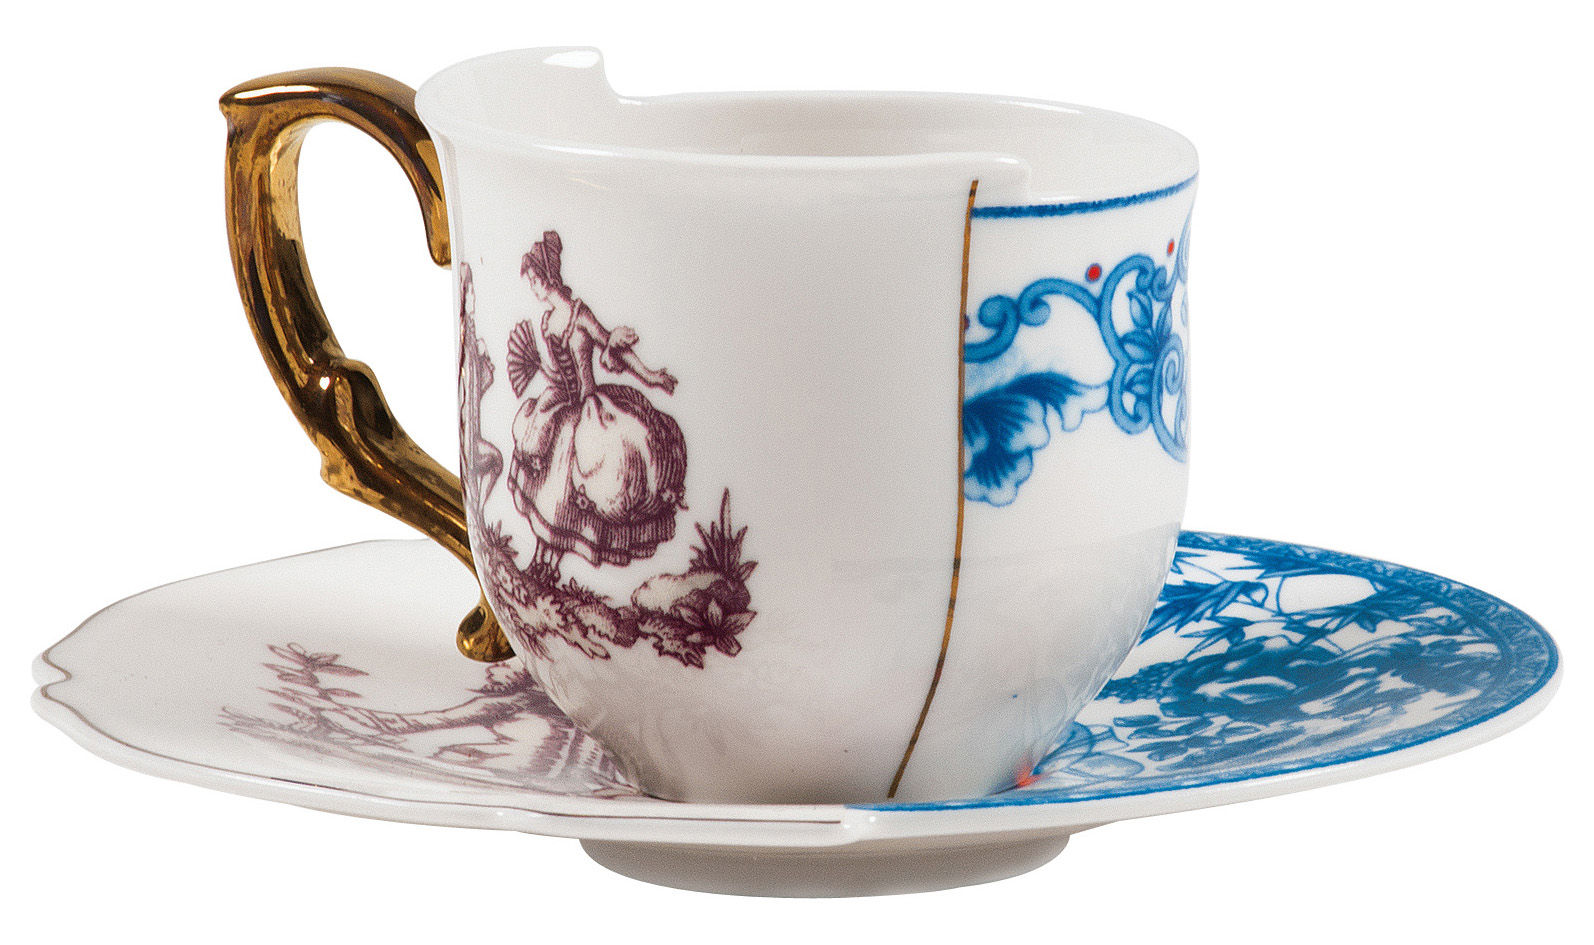 Tableware - Coffee Mugs & Tea Cups - Hybrid Eufemia Coffee cup - Set cup + saucer by Seletti - Eufemia - China